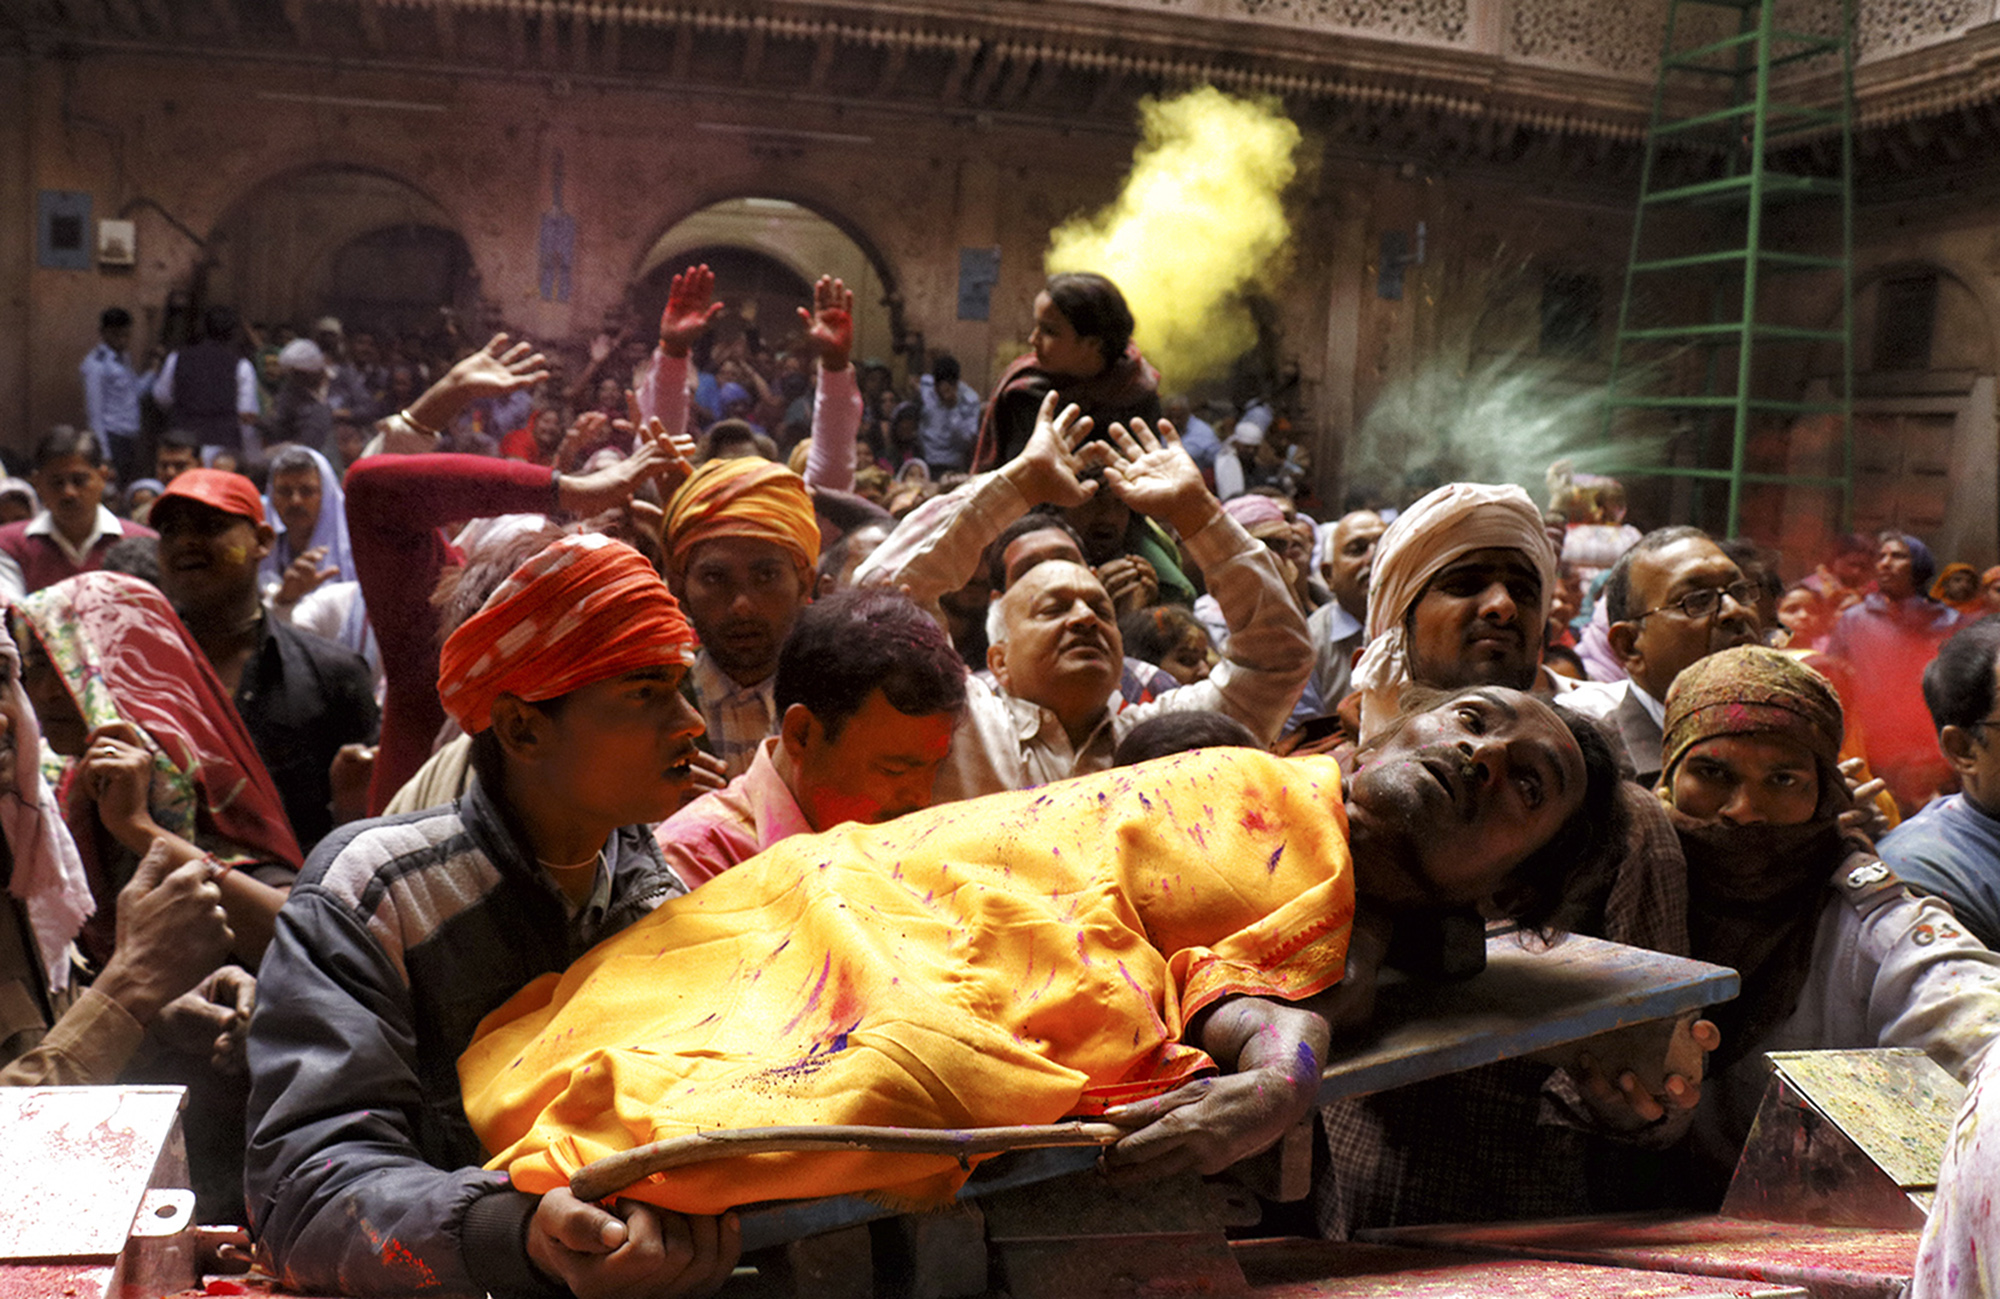 Physical challenged person getting support from his family to celebrate holi festival in banke bihari